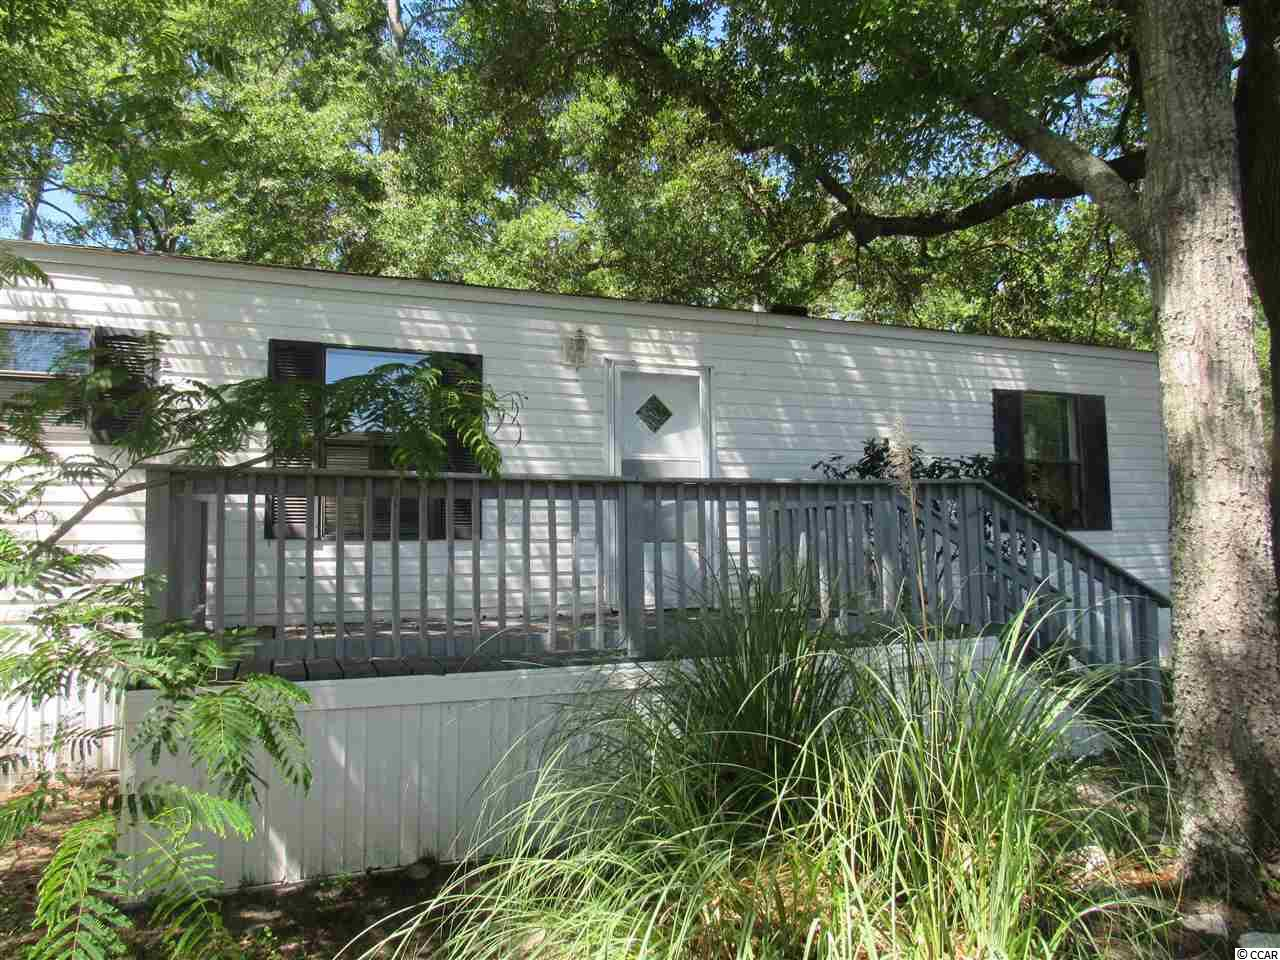 If you enjoy being close to the action then this is for you! This cozy home offers a split bedroom floor plan with 2 bedrooms, 2 full baths, new flooring throughout, new roof, comes 90% furnished and new stainless steel appliances to be installed the first week of August.  The Key Largo community is located in the heart of Murrells Inlet and is within walking distance or golfcart ride to the MarshWalk. The area's finest restaurants are located in Murrells Inlet and offer everything from burgers and fries to prepared-to-order fresh seafood, wood-fired pizzas and the finest steaks around. Dining out not your thing? There are plenty of other options to choose from like a dolphin cruise, deep sea fishing or rent a boat for the day. And don't forget the night life! The list of things to do goes on, you will never be bored! This is the perfect beach retreat, weekend getaway or stay all year long.  Schedule your showing today!